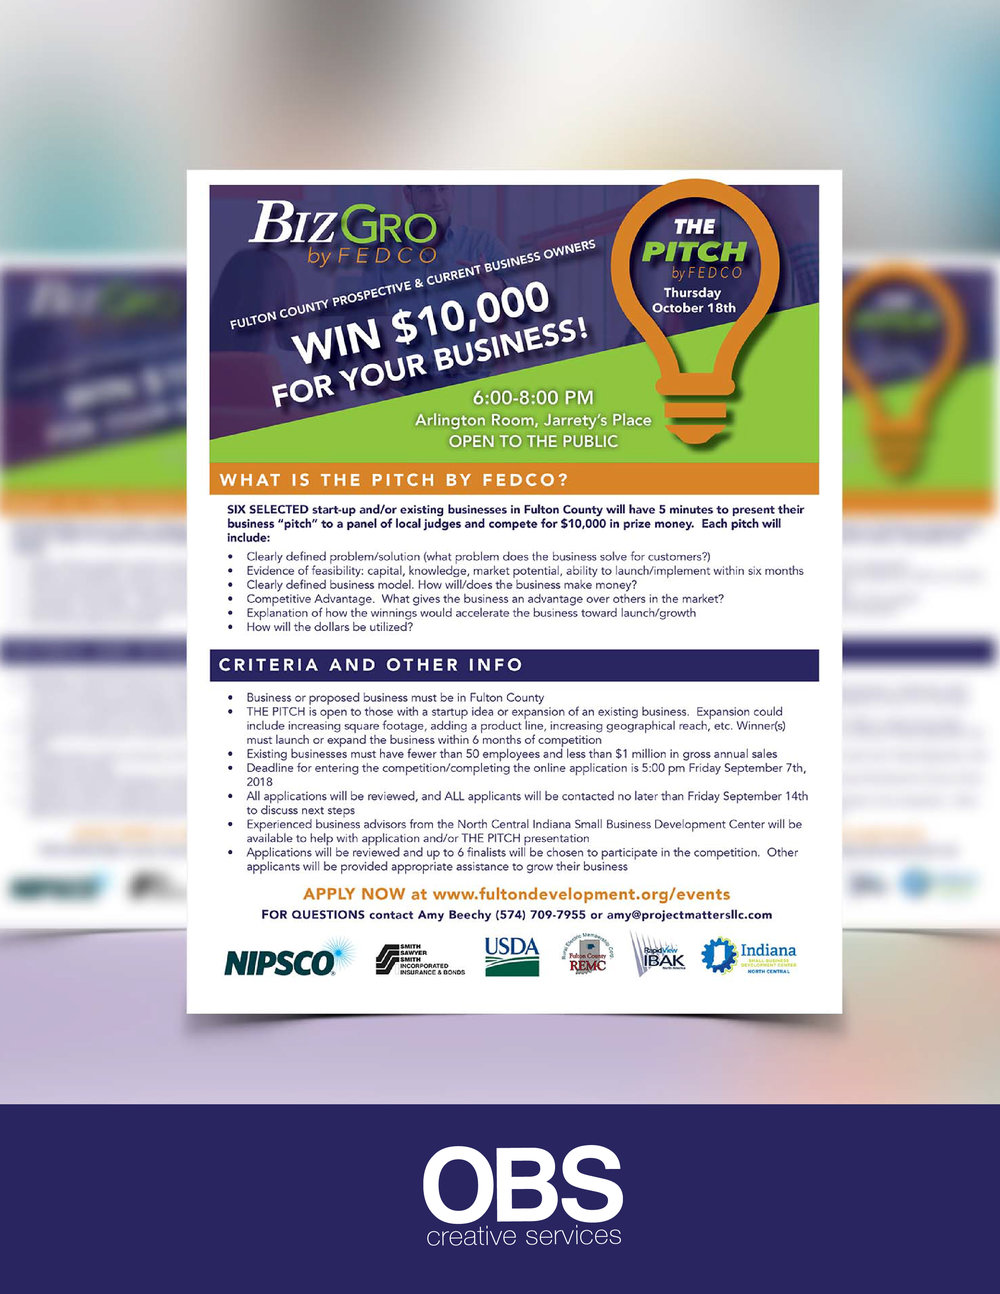 FEDCO The Pitch Competition Flyer.jpg